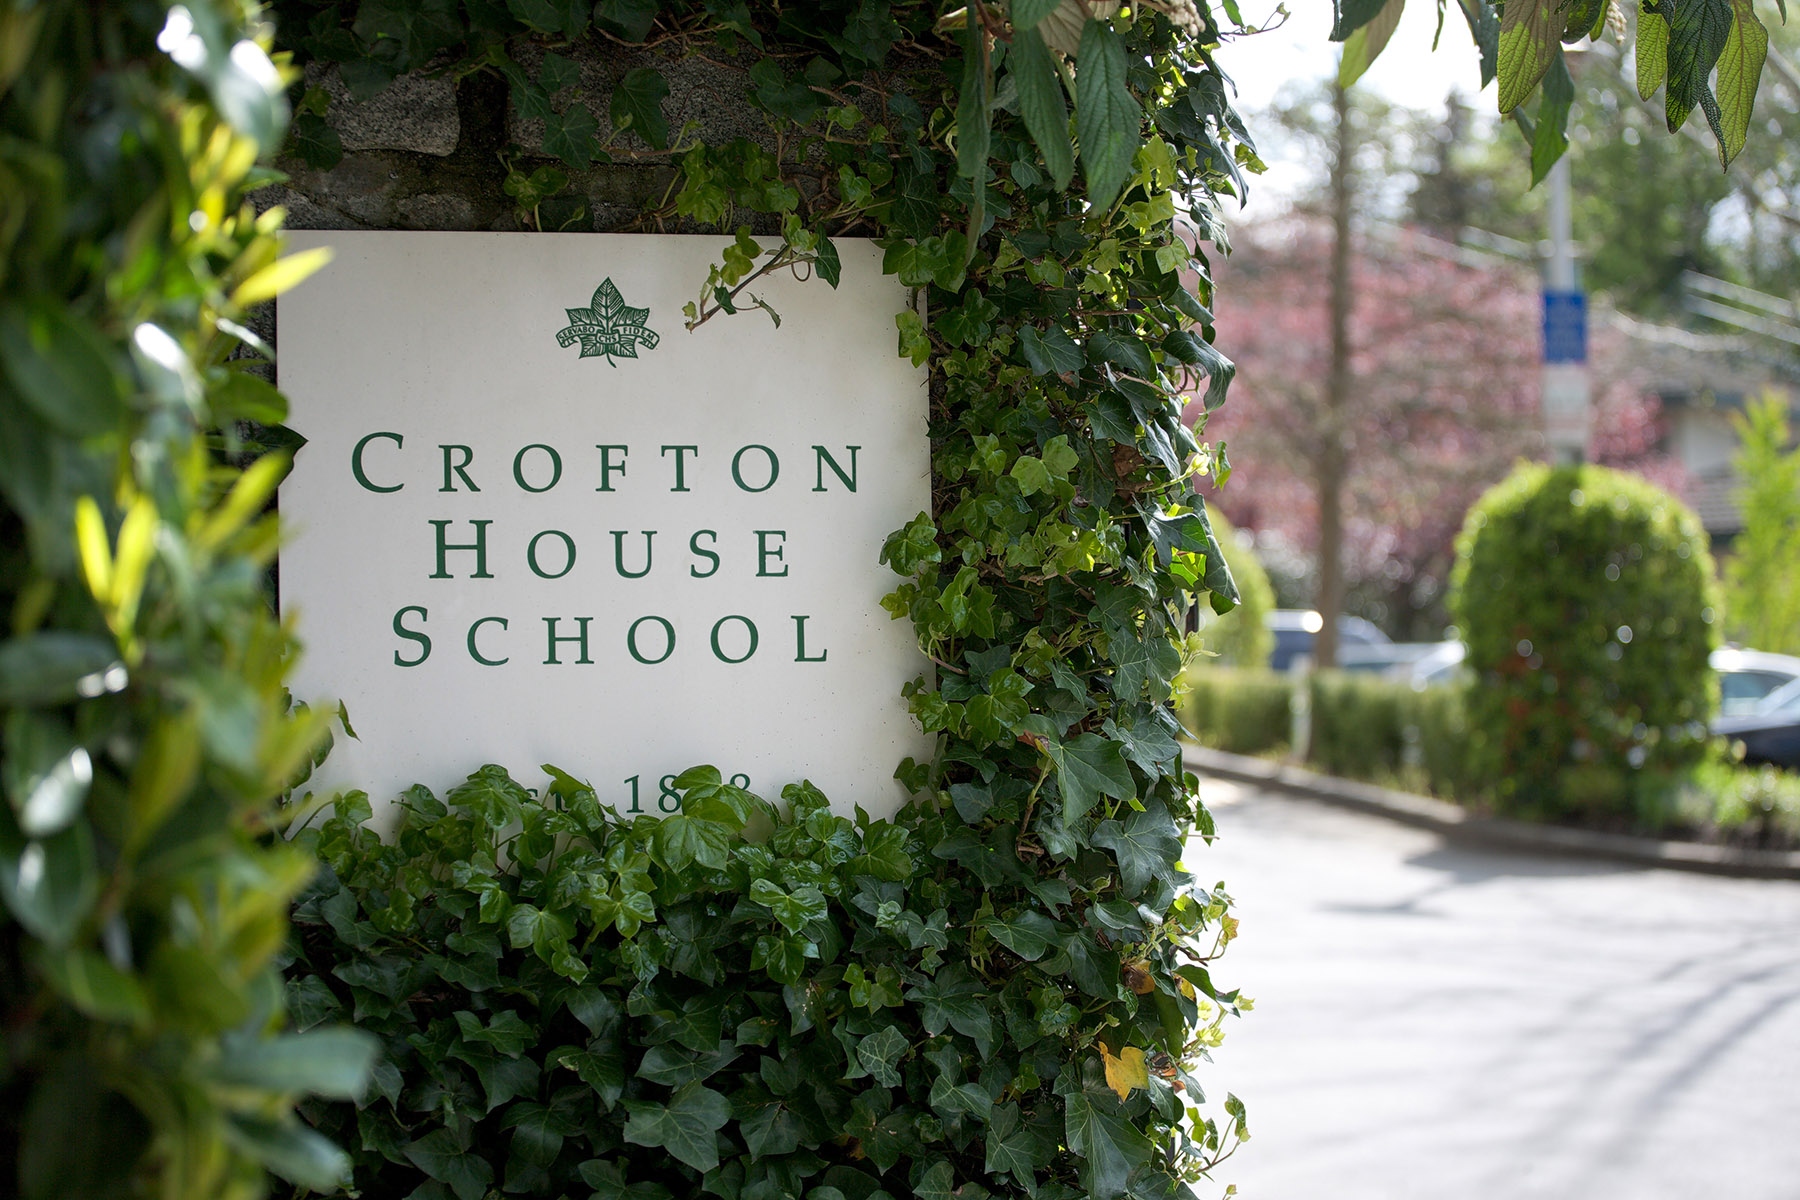 Crofton House School - Kerrisdale neighbourhood